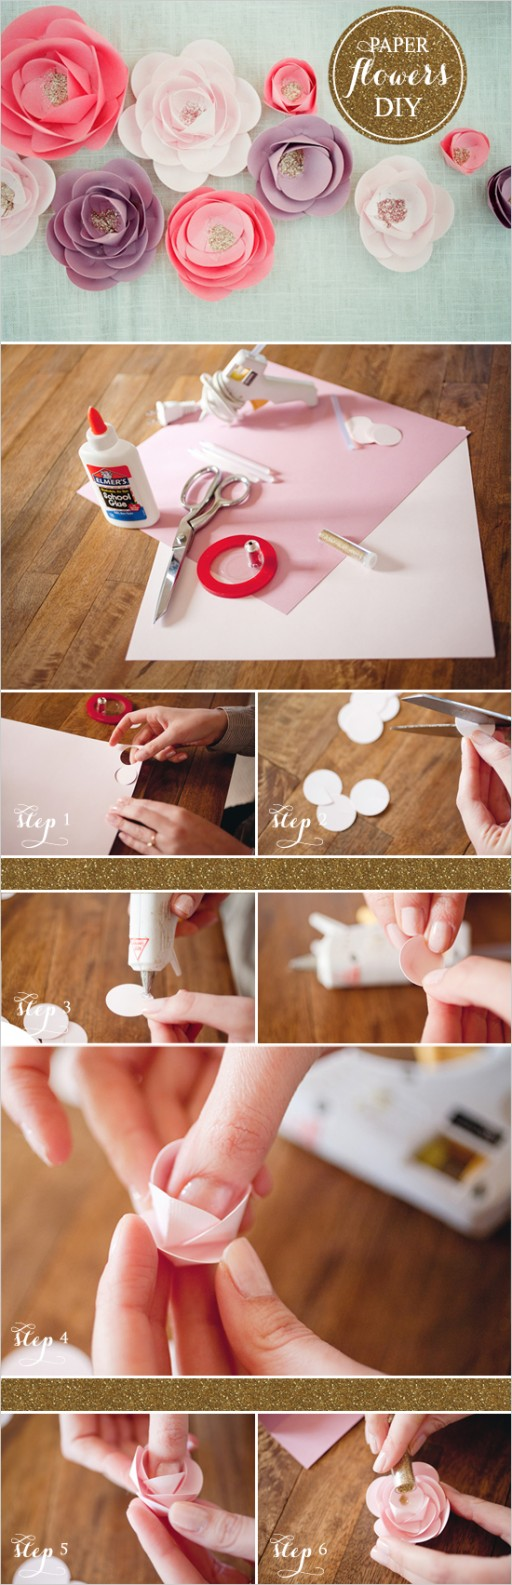 How to make beautiful DIY paper flowers 2